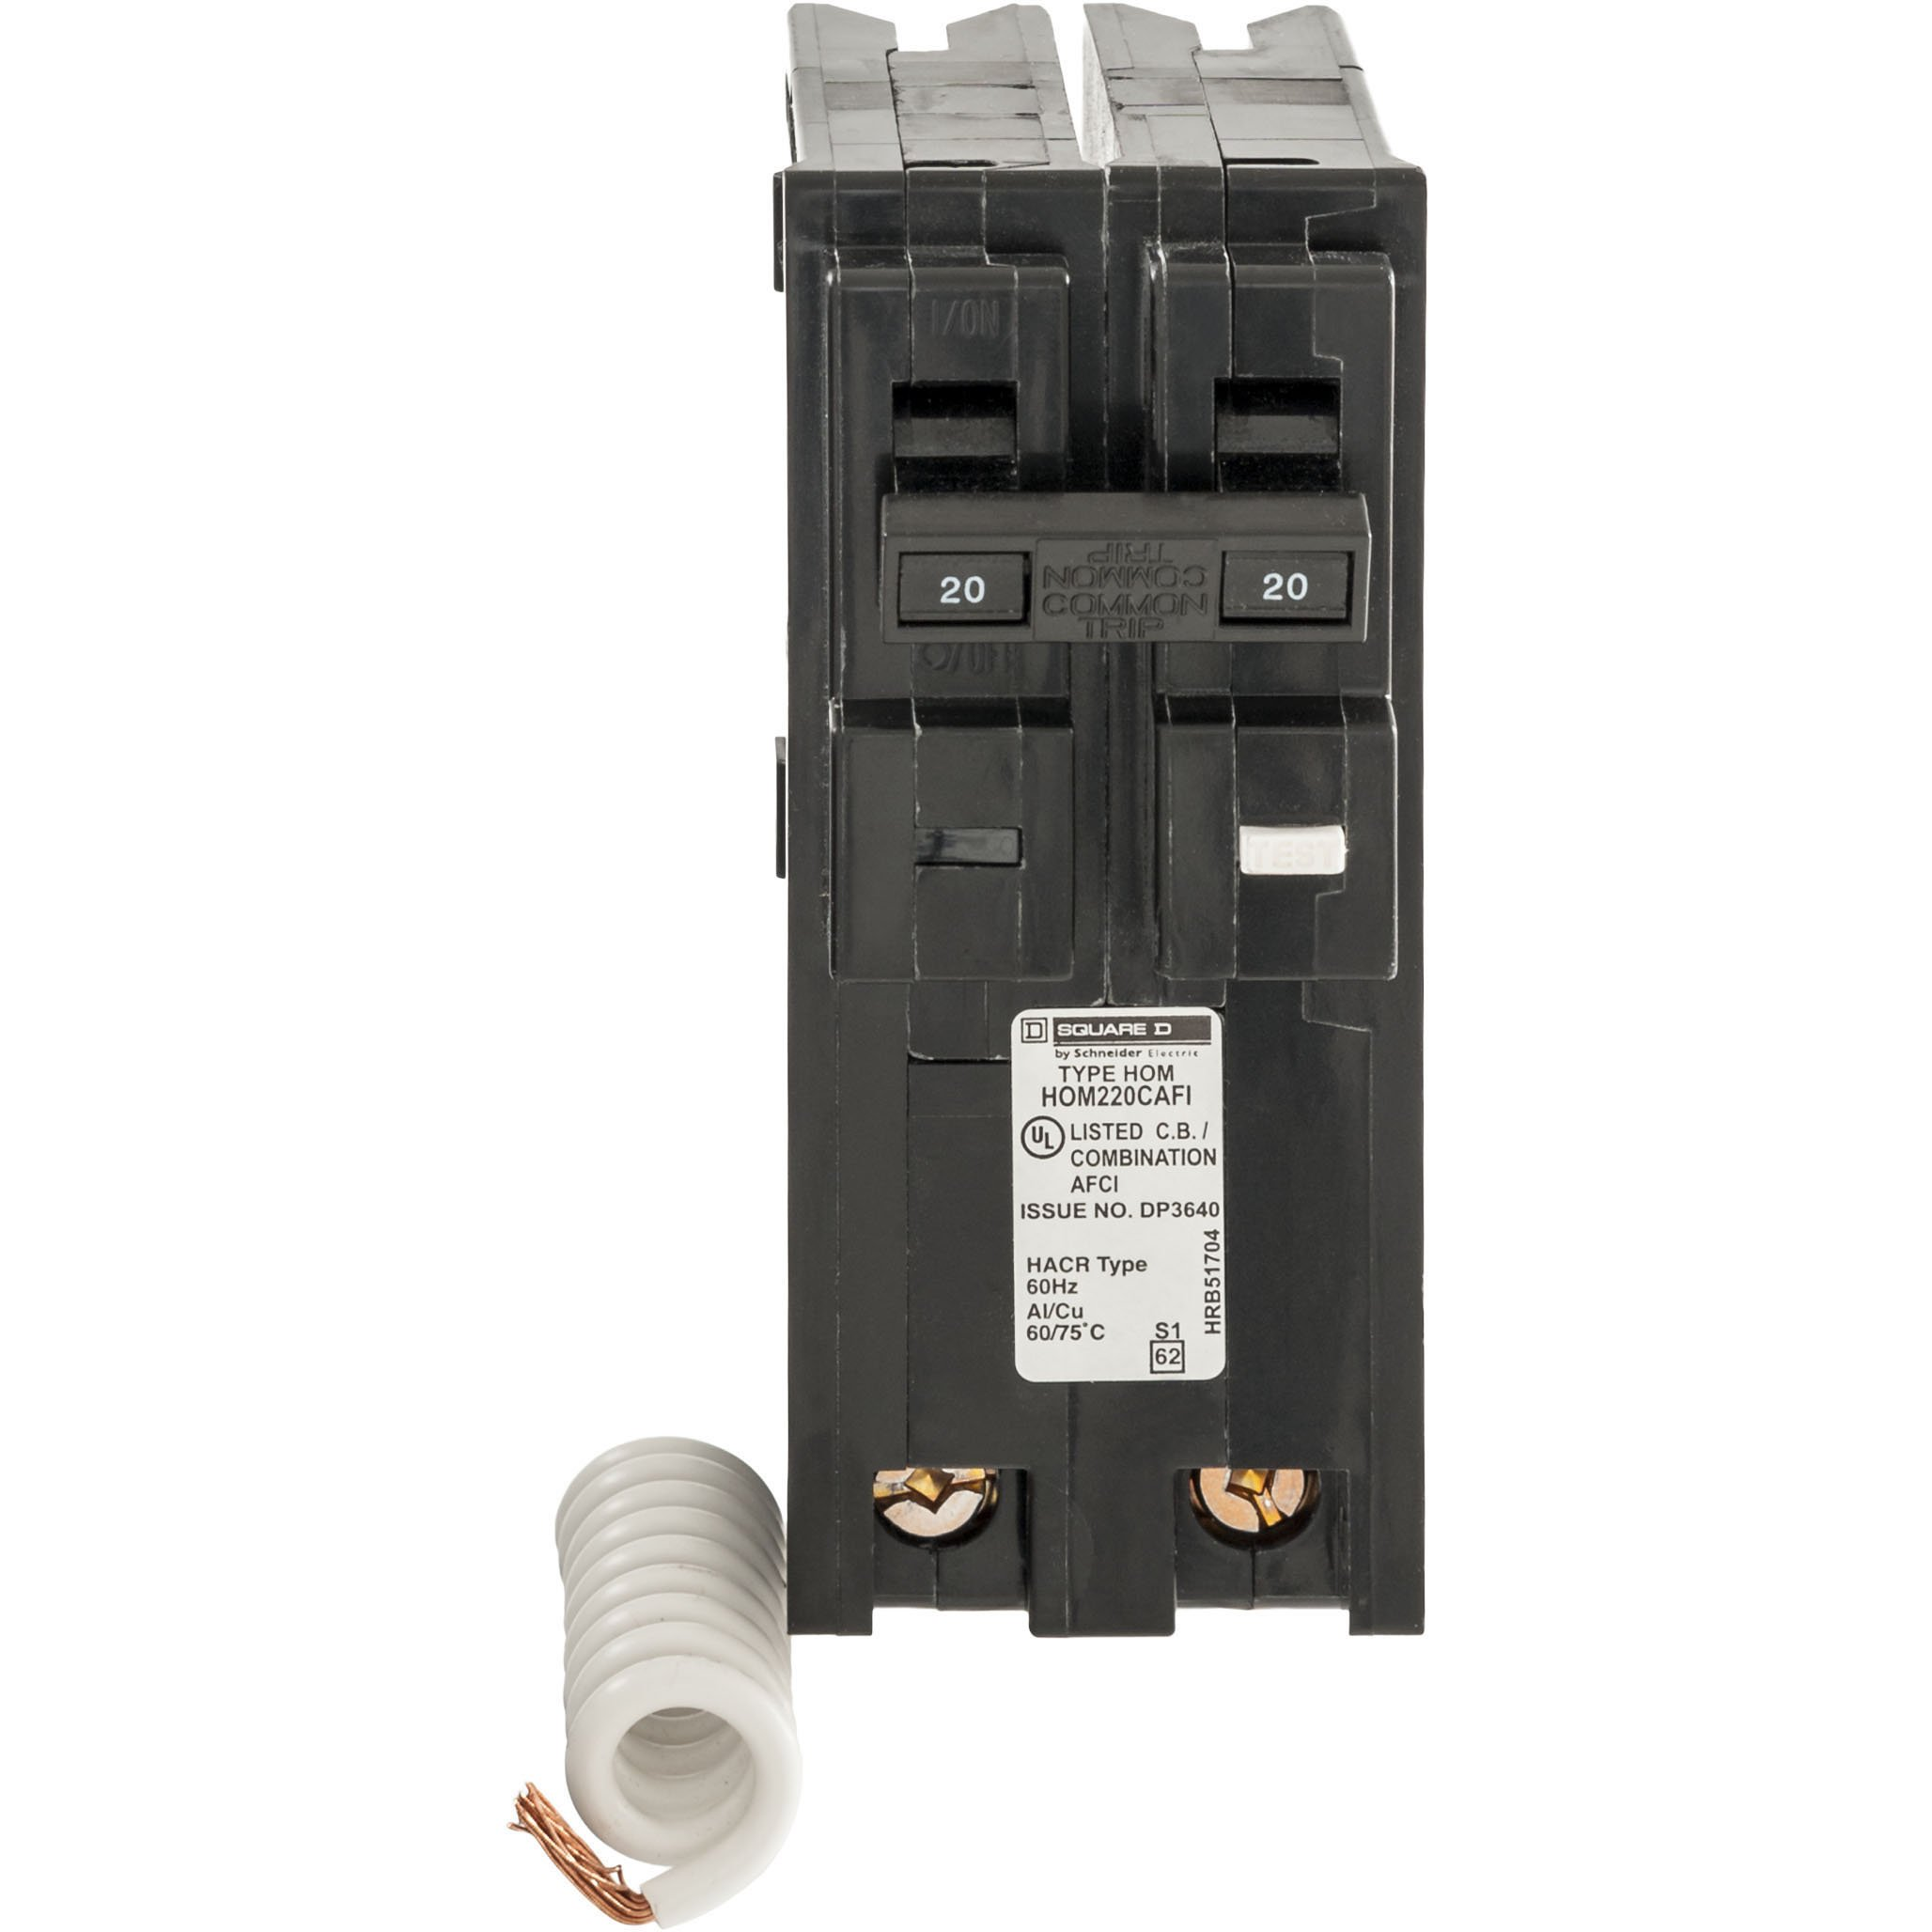 Square D by Schneider Electric HOM220CAFIC Homeline 20 Amp Two-Pole CAFCI Circuit Breaker, by Square D by Schneider Electric